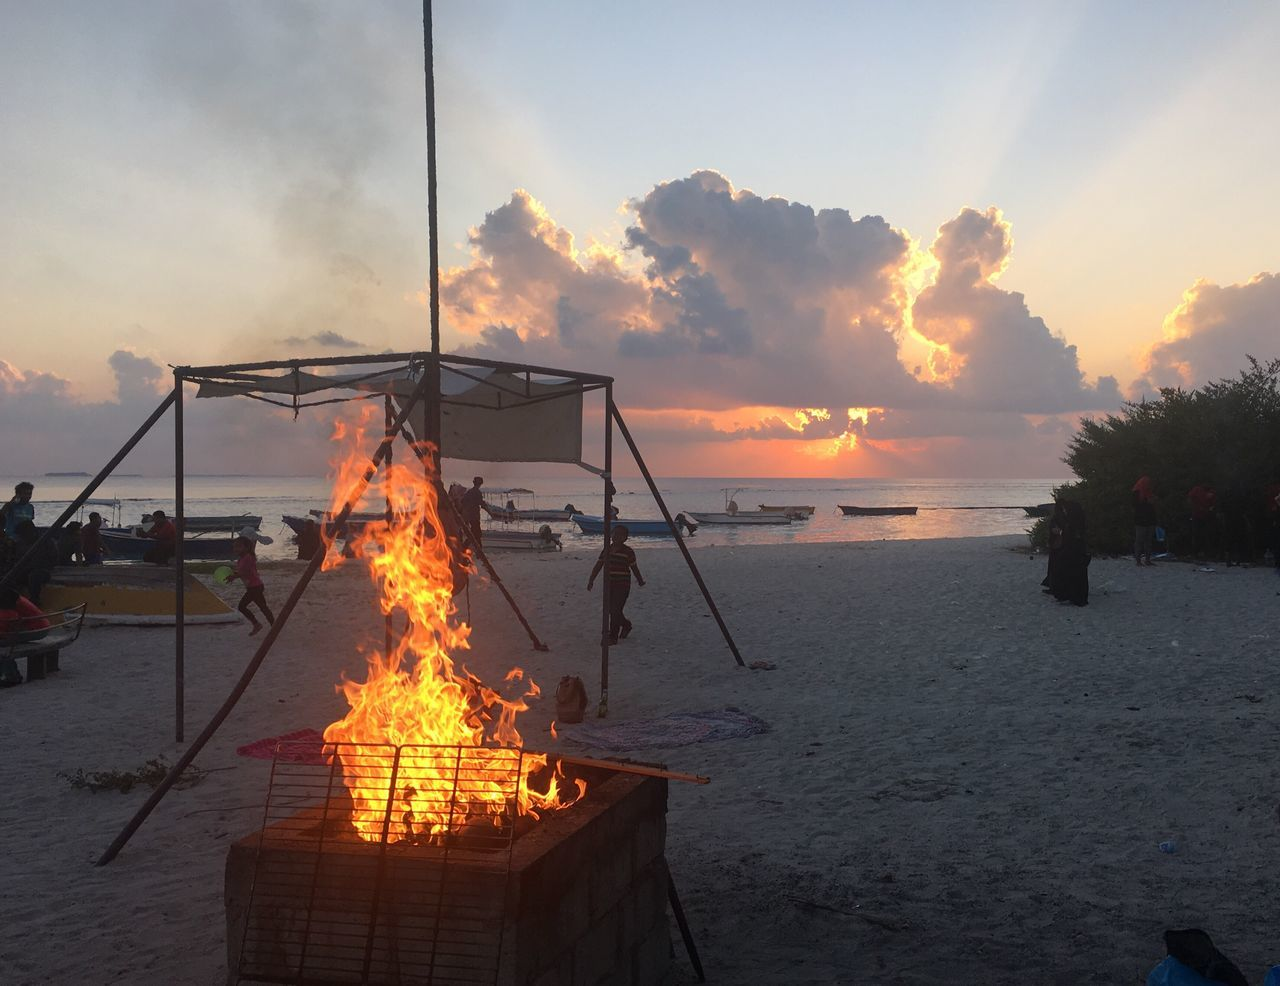 Sunset Heat - Temperature Sea Flame Orange Color Sky Nature Outdoors Burning Water No People Beach Barbecue Beach Barbecue Barbecue Beach Villingili Maldives Local Island Villingilli Beach Fire Skyonfire EyeEmNewHere